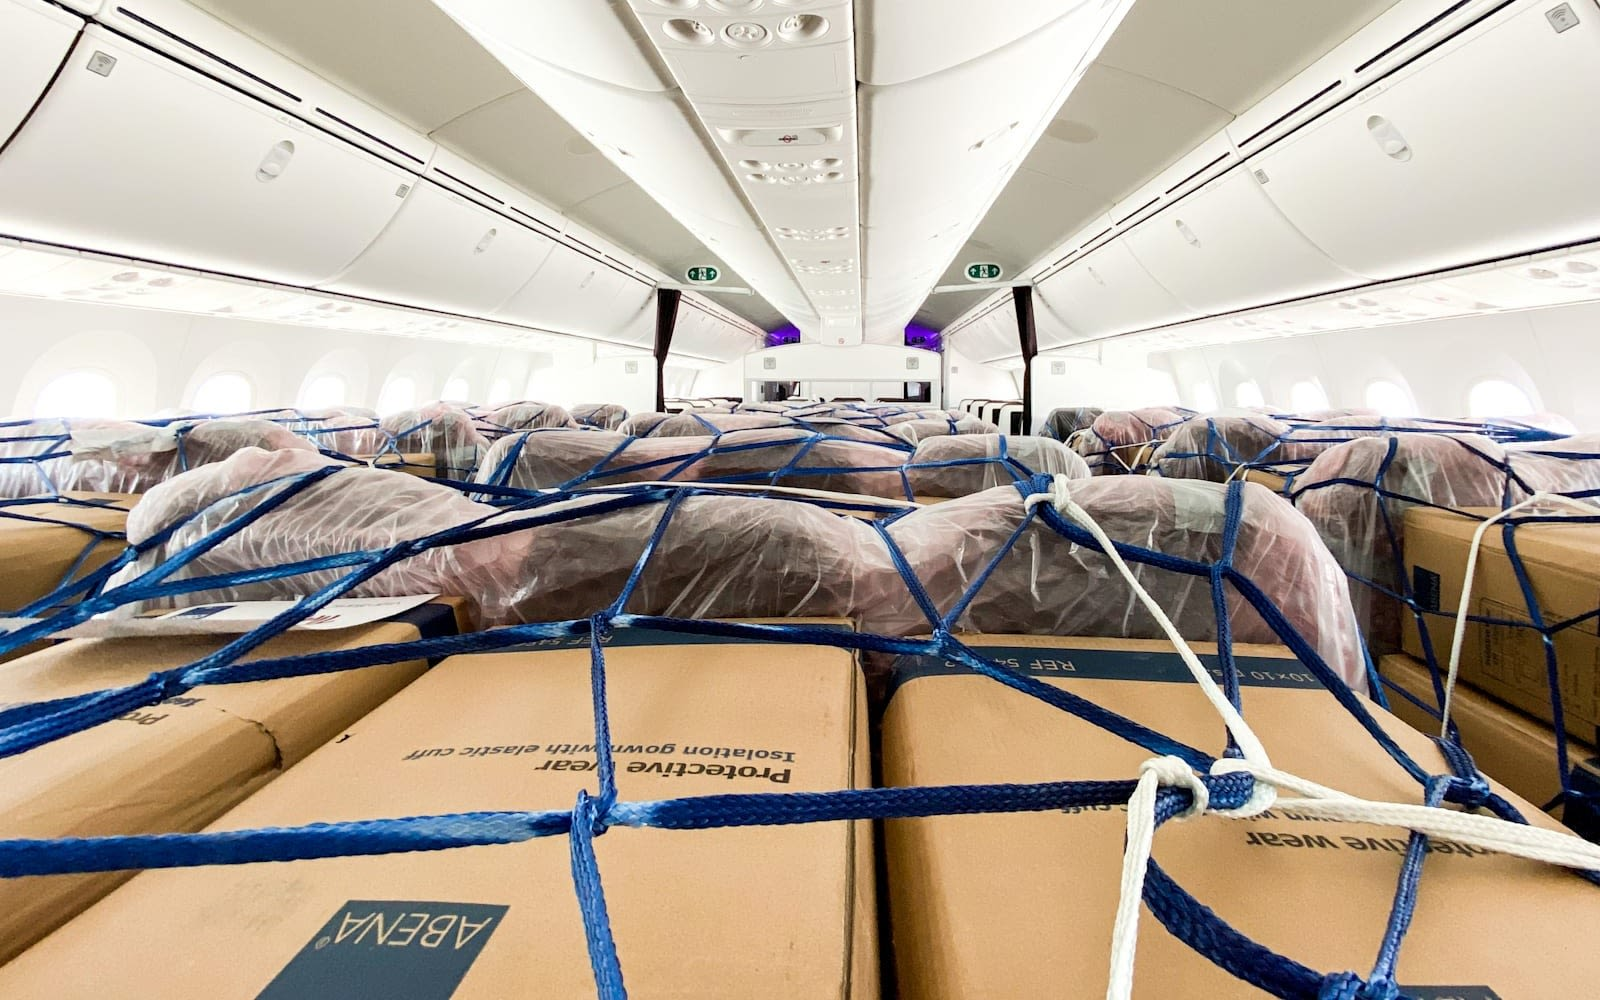 picure of boxed protective wear in the cargo area of a virgin plane ready for transport to help provide supplies for covid19